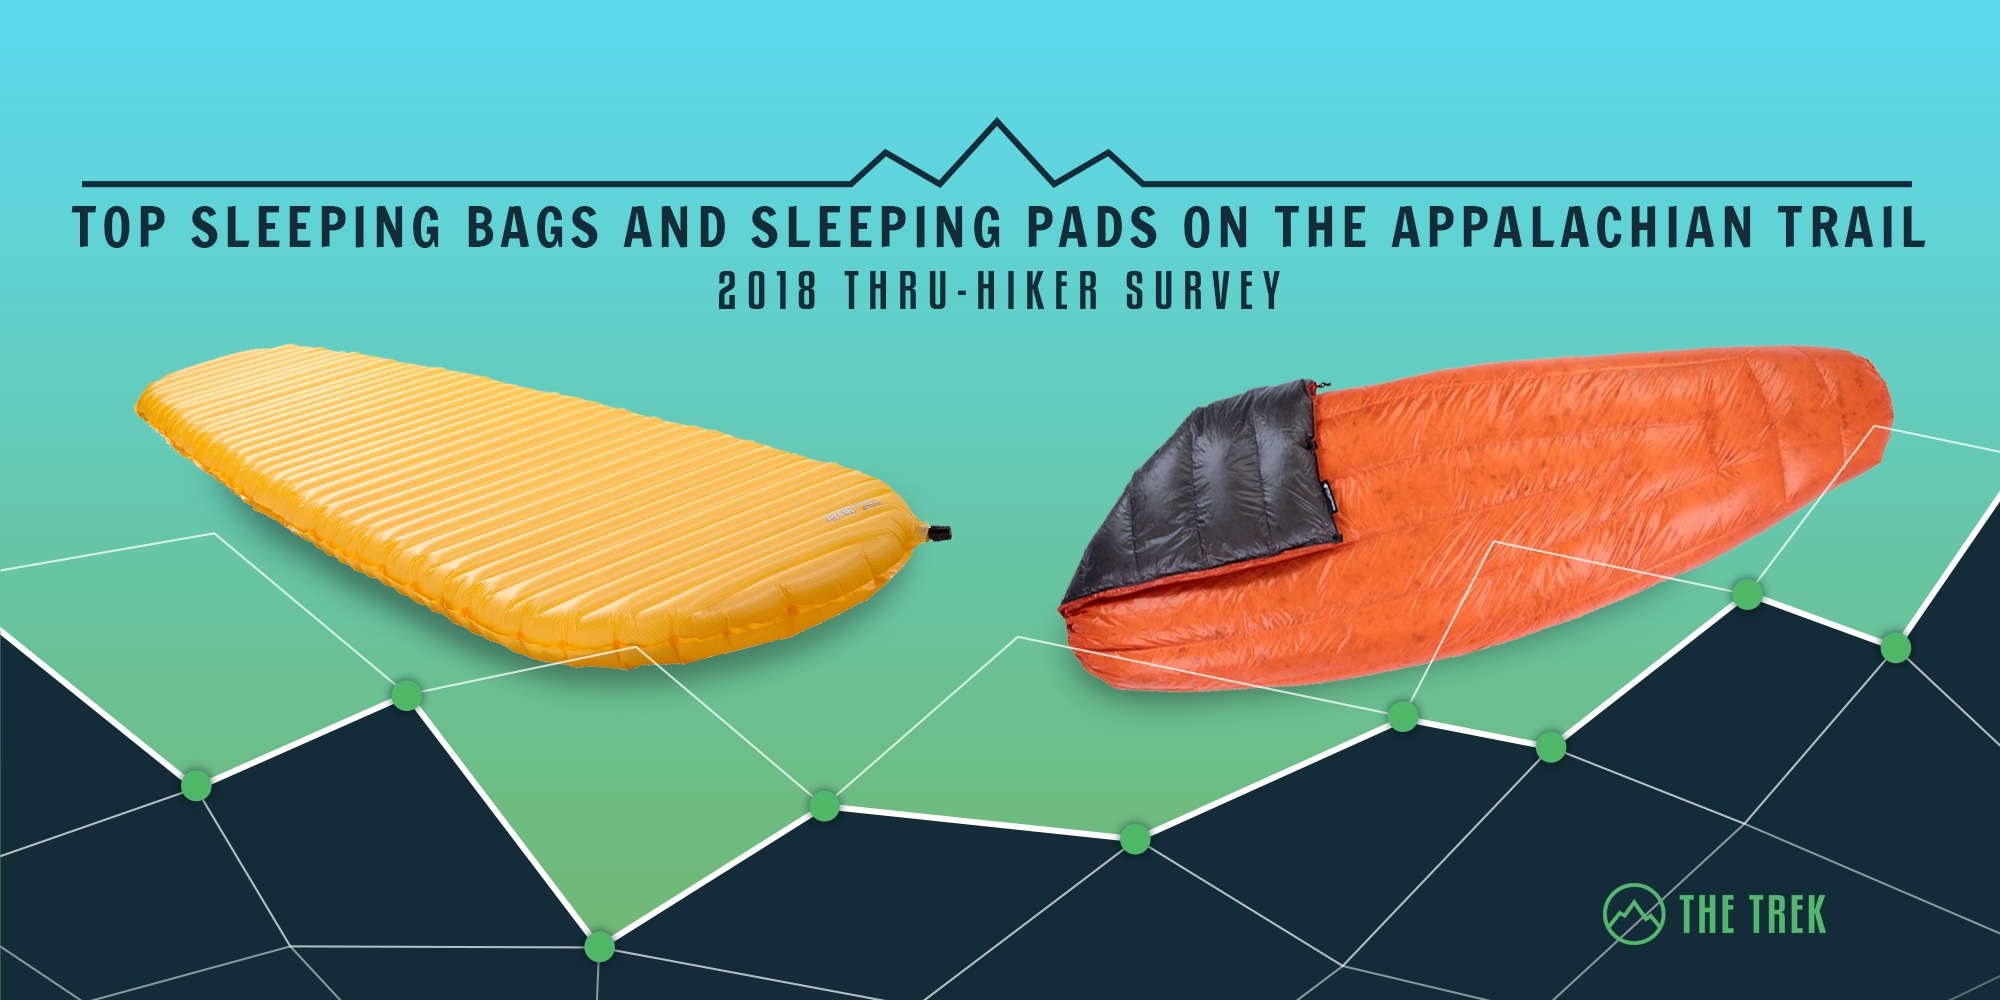 Top Sleeping Bags and Pads on the Appalachian Trail: 2018 Hiker Survey